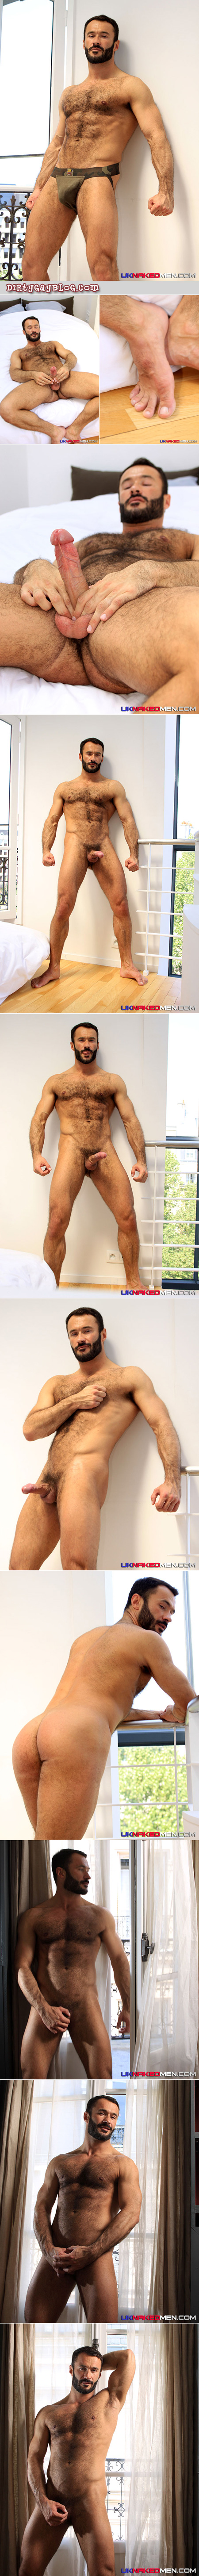 Very hairy, handsome, muscular French guy masturbates to guys on camera.